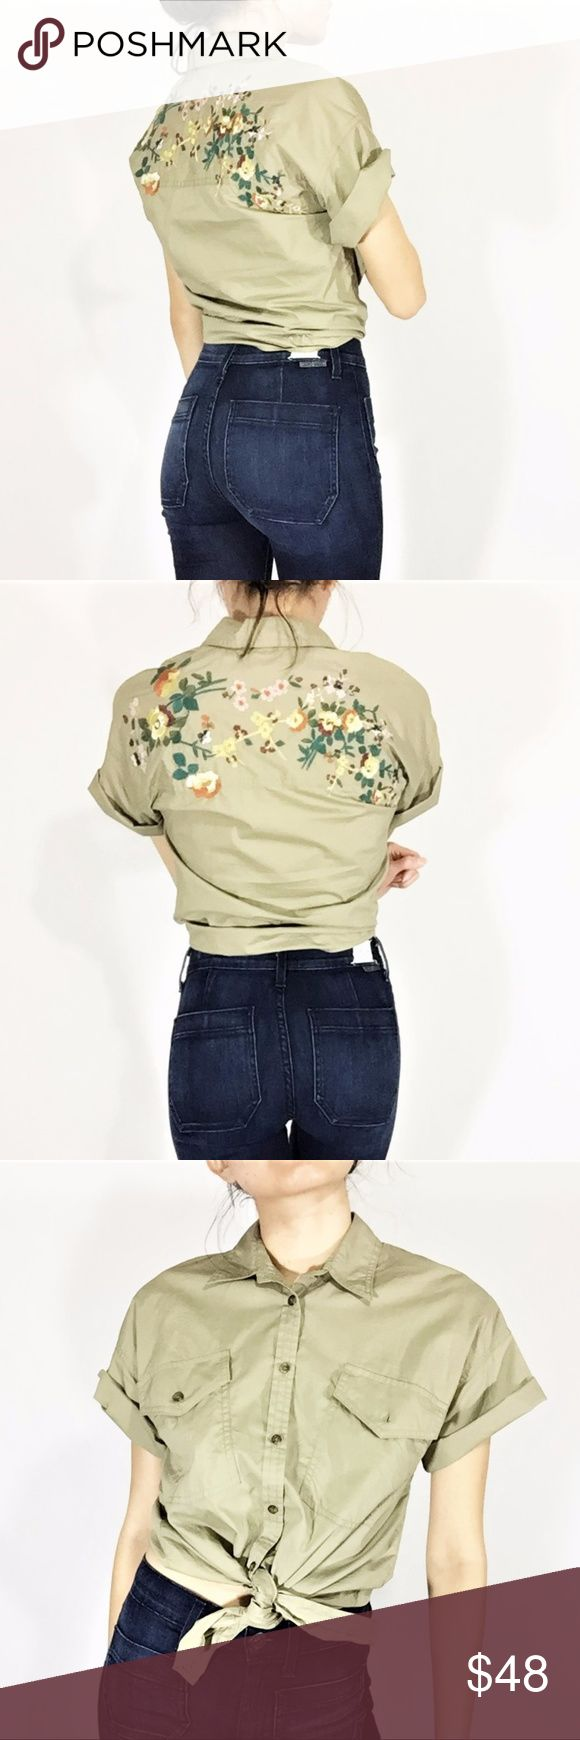 Madewell Floral Embroidered Khaki/Olive Crop -Madewell label -Embroidered floral detail on the back -Front button closure -Ties at the waist (crop style) -Labeled size XXS -Model is 5,3/102lbs -100% cotton -Fall 2017 collection Madewell Tops Button Down Shirts